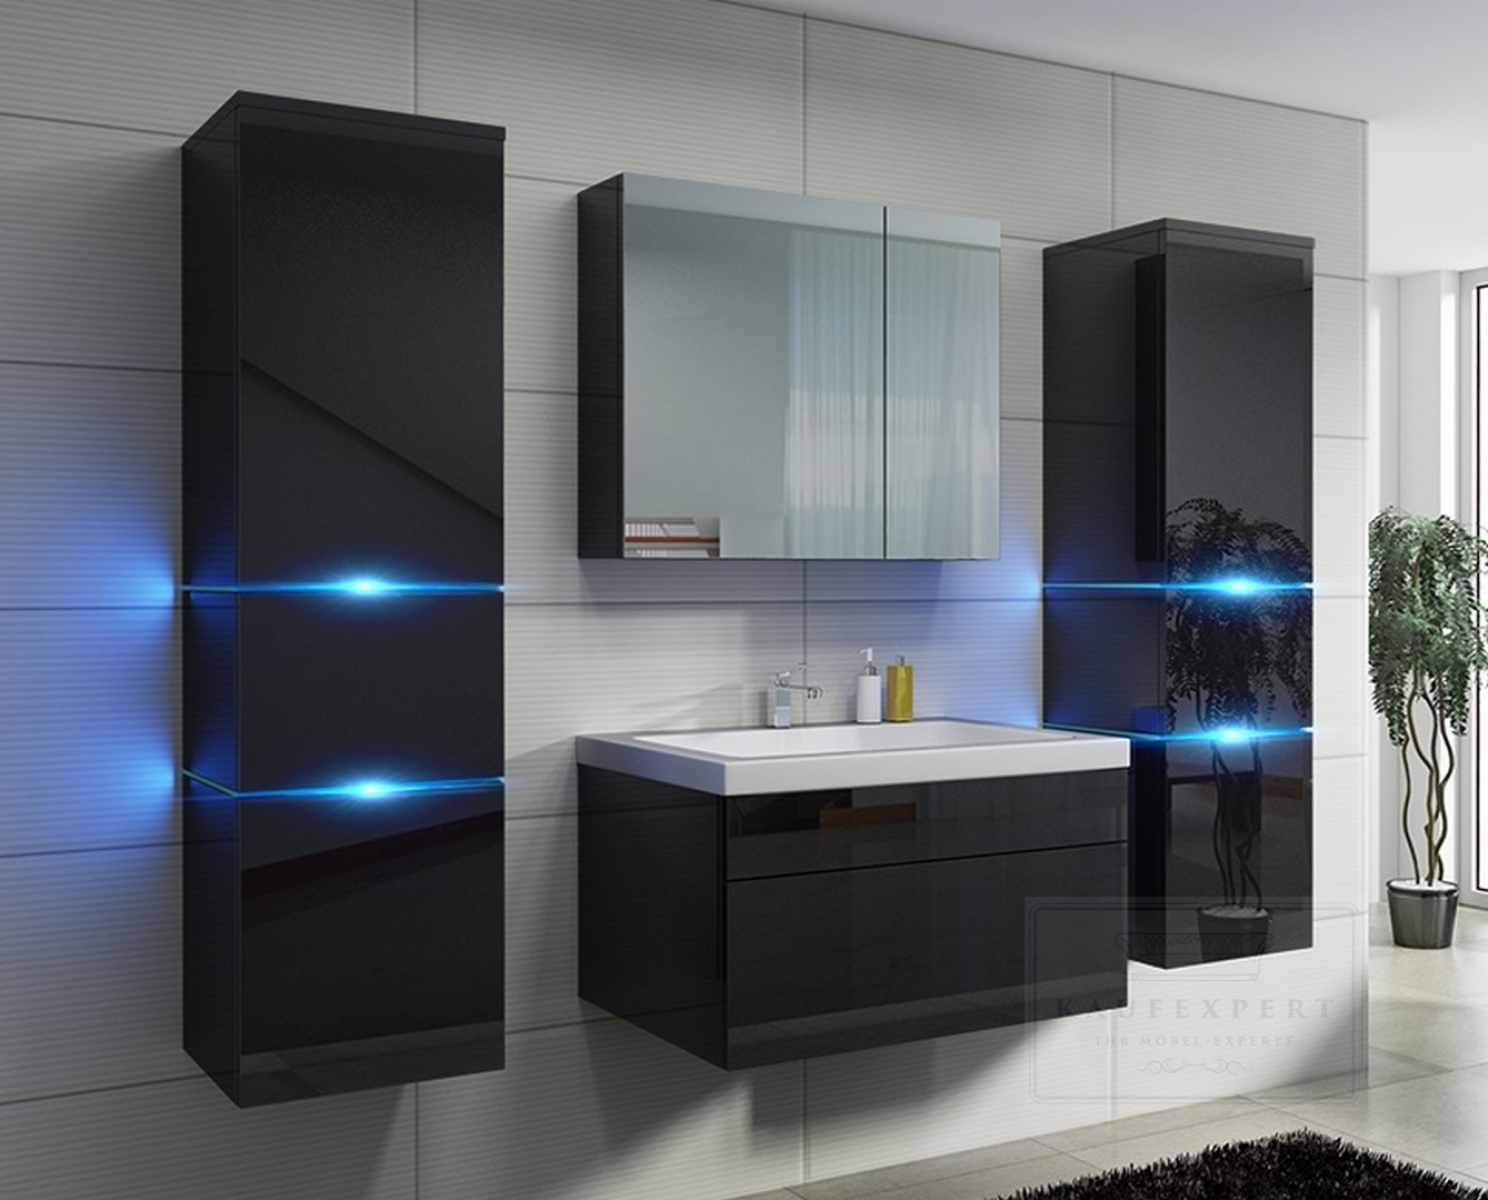 kaufexpert badm bel set prestige schwarz hochglanz lackiert keramik waschbecken badezimmer led. Black Bedroom Furniture Sets. Home Design Ideas